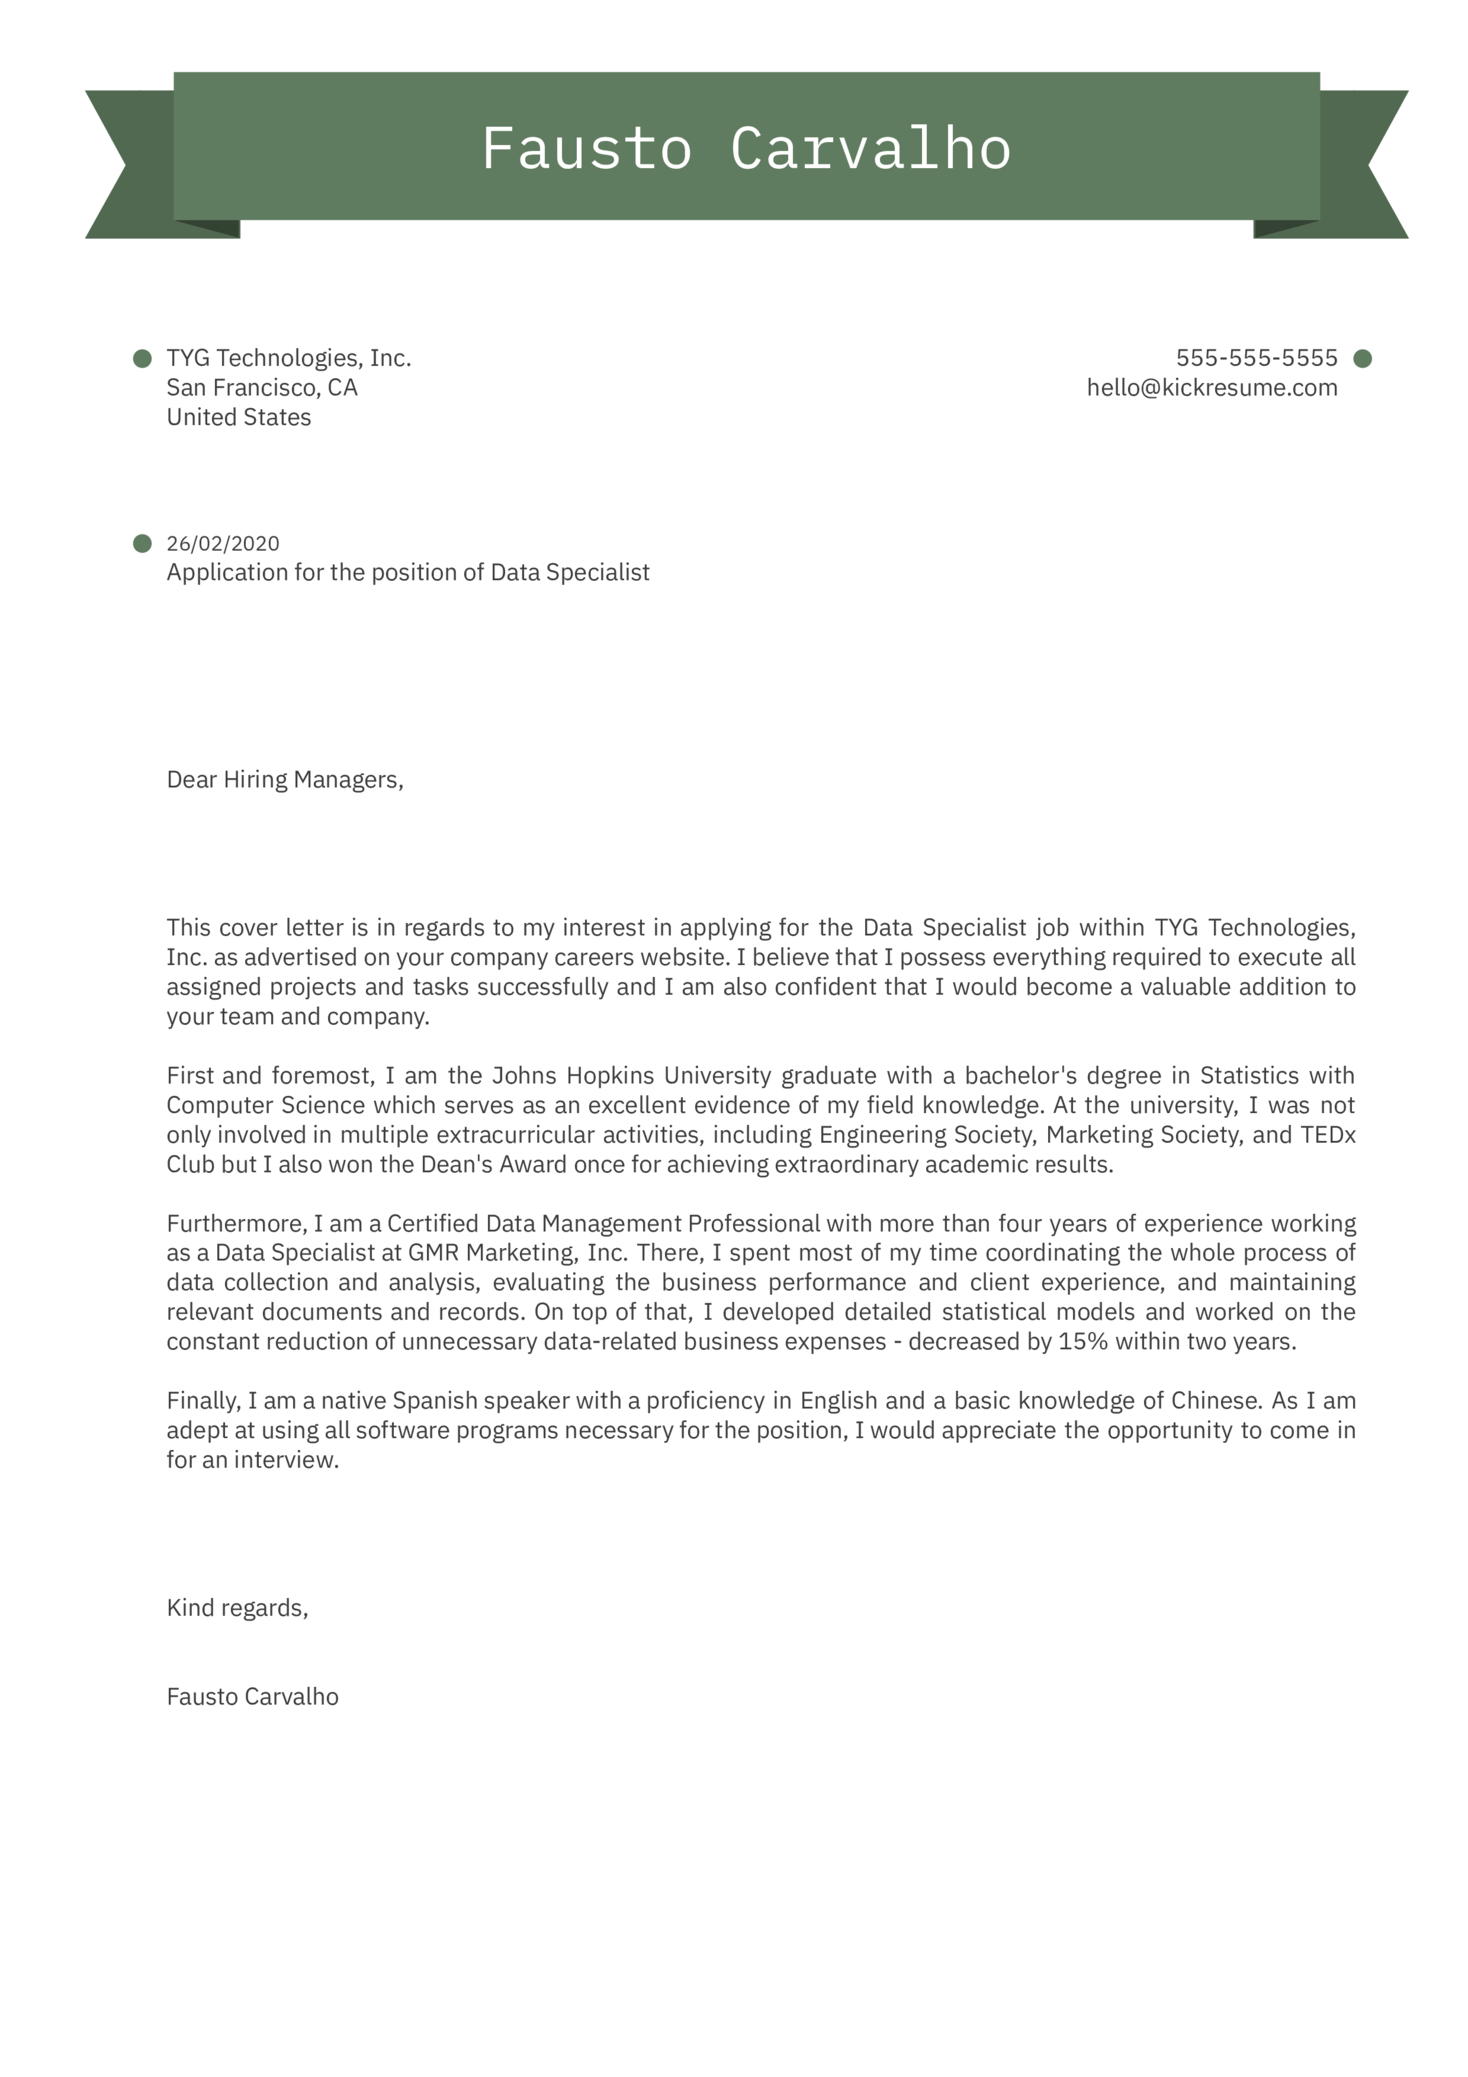 Data Specialist Cover Letter Example